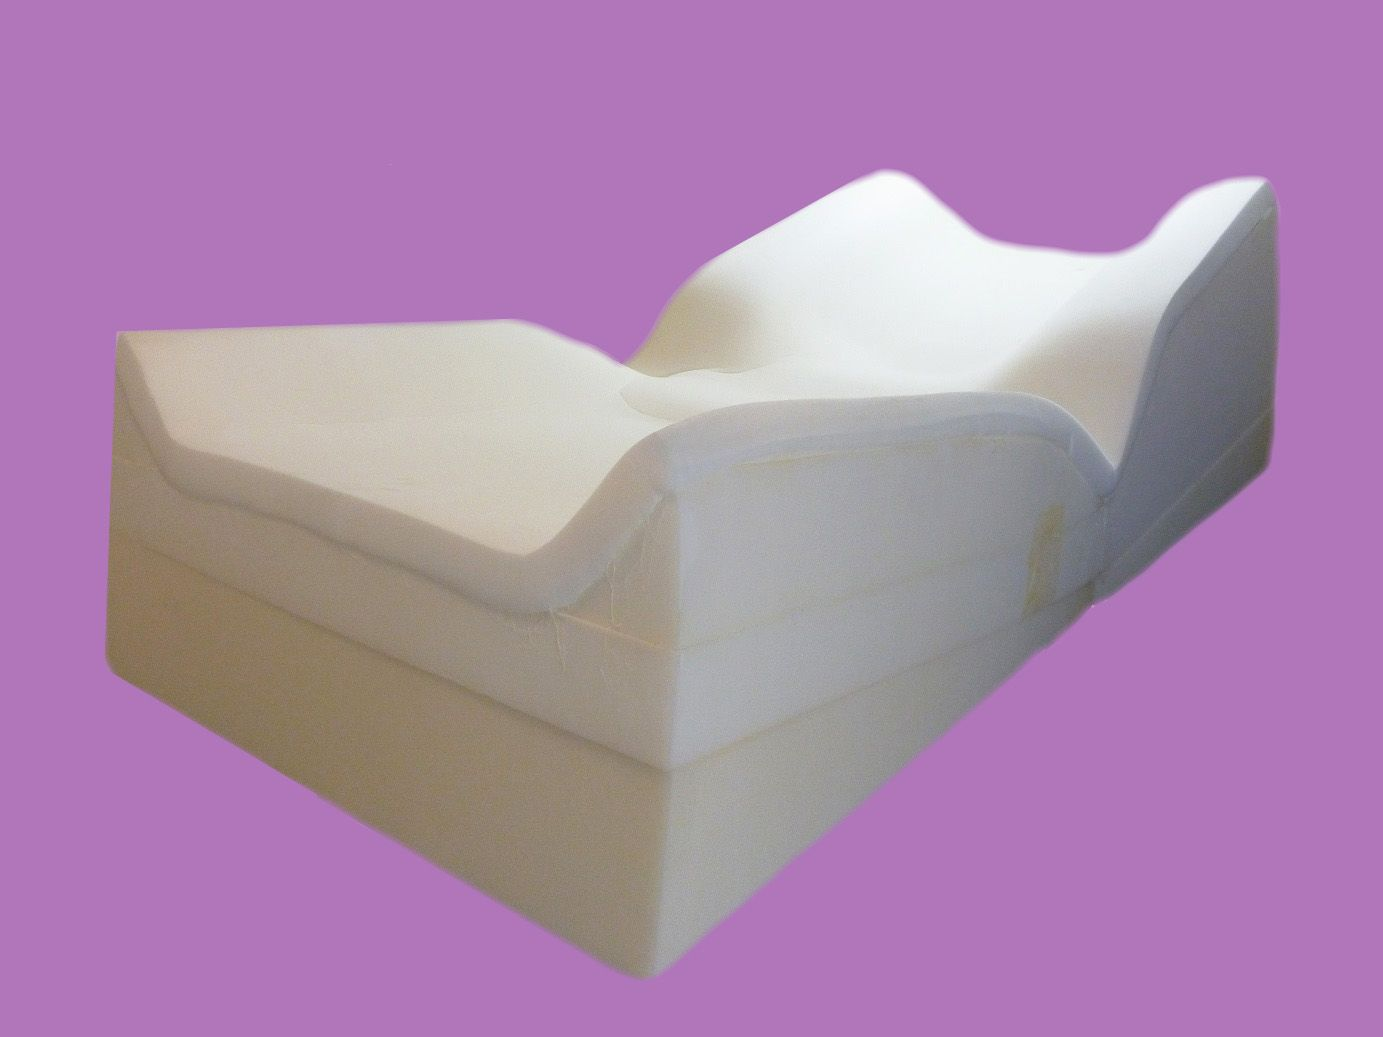 Good The Comfy Lift™ Bed Has A Patented Design That Features An Elevated Head  Rest To Lift The Upper Body Of The Sleeper.